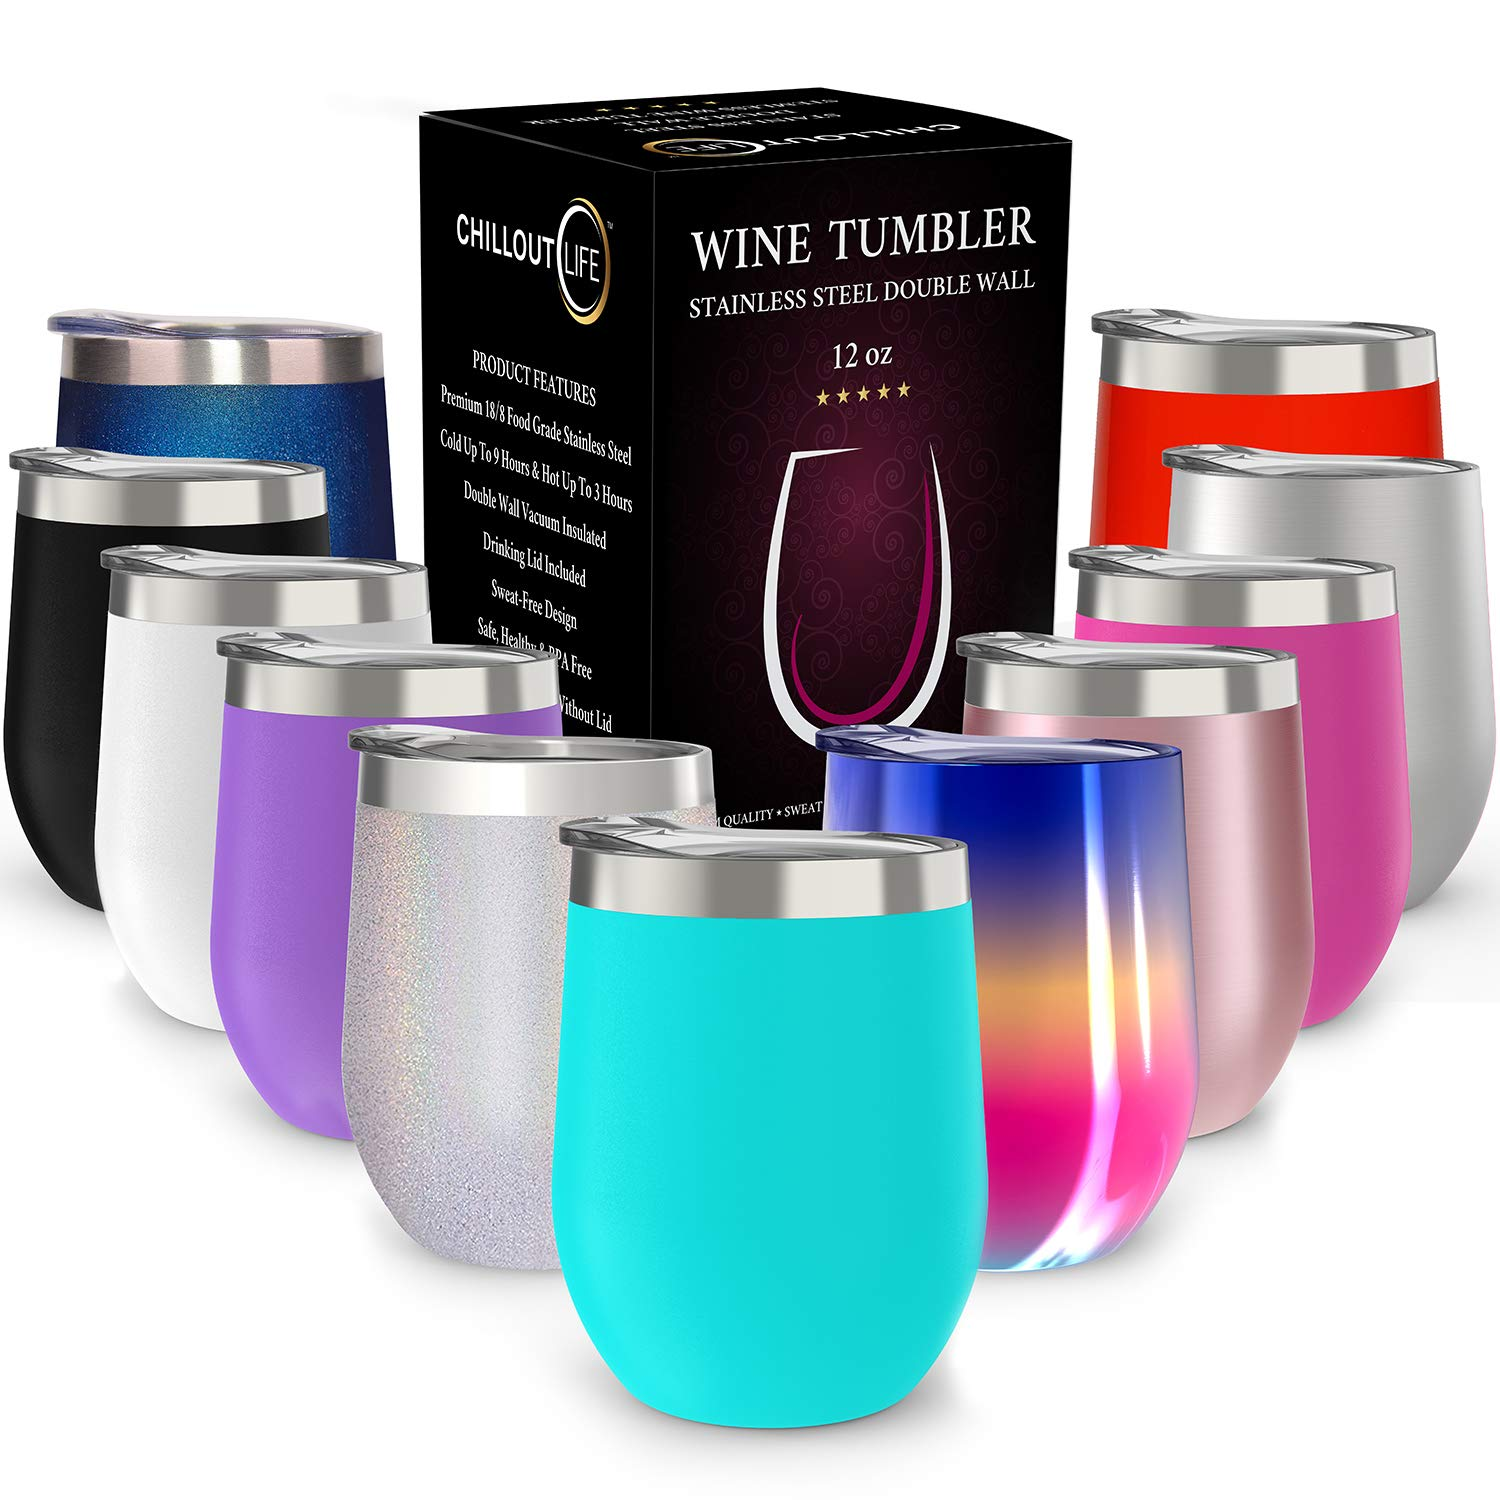 af03ea63d30 CHILLOUT LIFE 12 oz Stainless Steel Tumbler with Lid & Gift Box | Wine  Tumbler Double Wall Vacuum Insulated Travel Tumbler Cup for Coffee, Wine,  Cocktails, ...